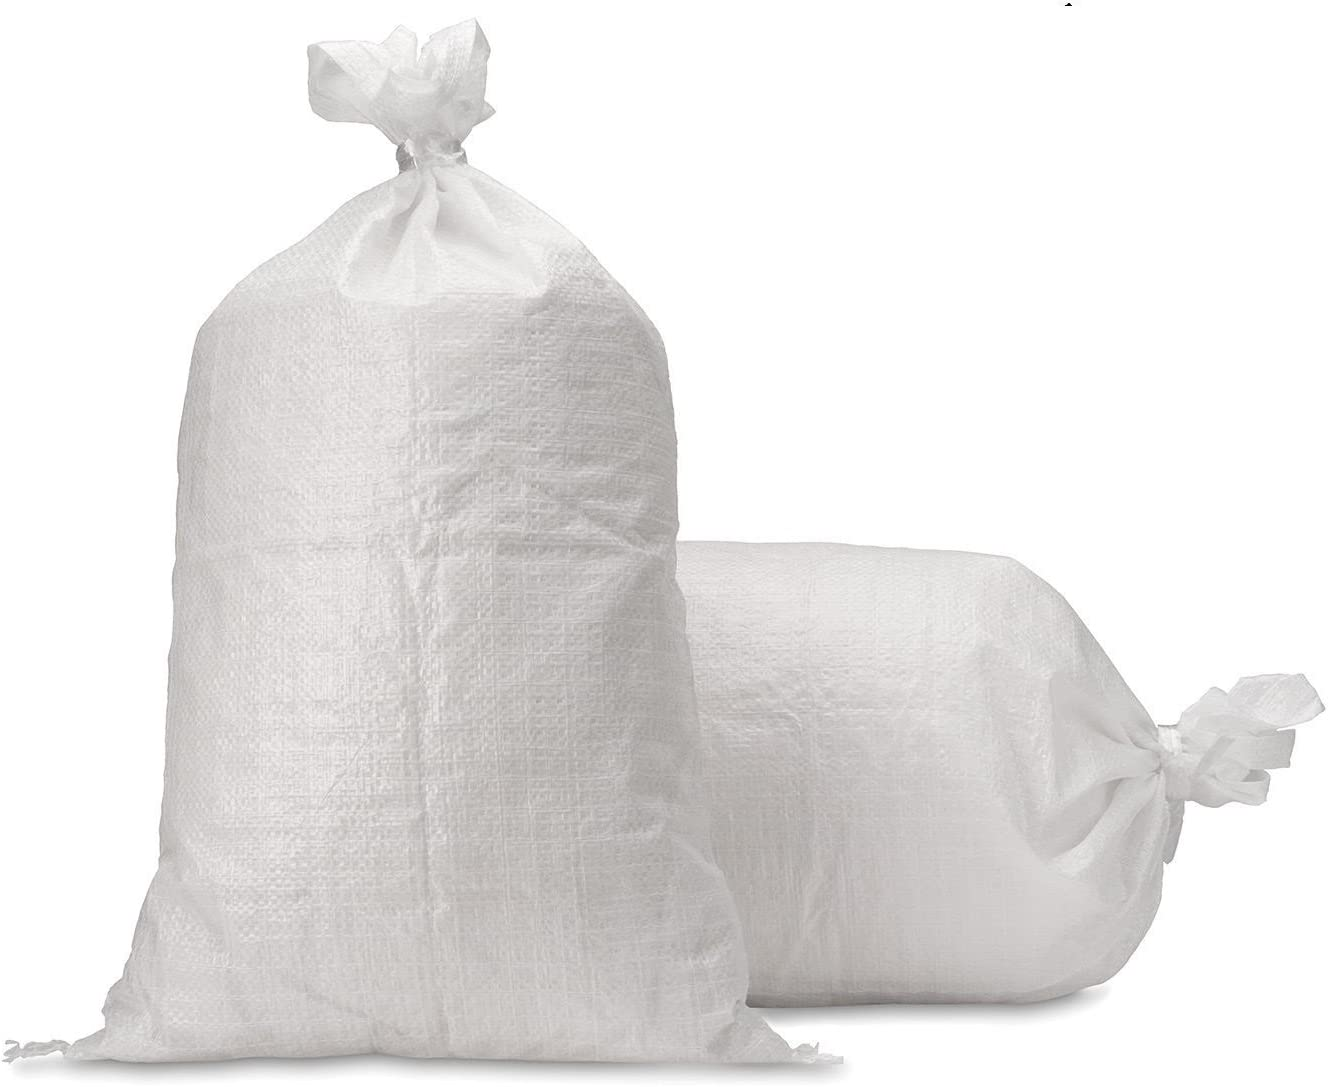 "UpNorth Sand Bags - Empty White Woven Polypropylene Sandbags w/Ties, w/UV Protection; size: 14"" x 26"", Qty of 10"